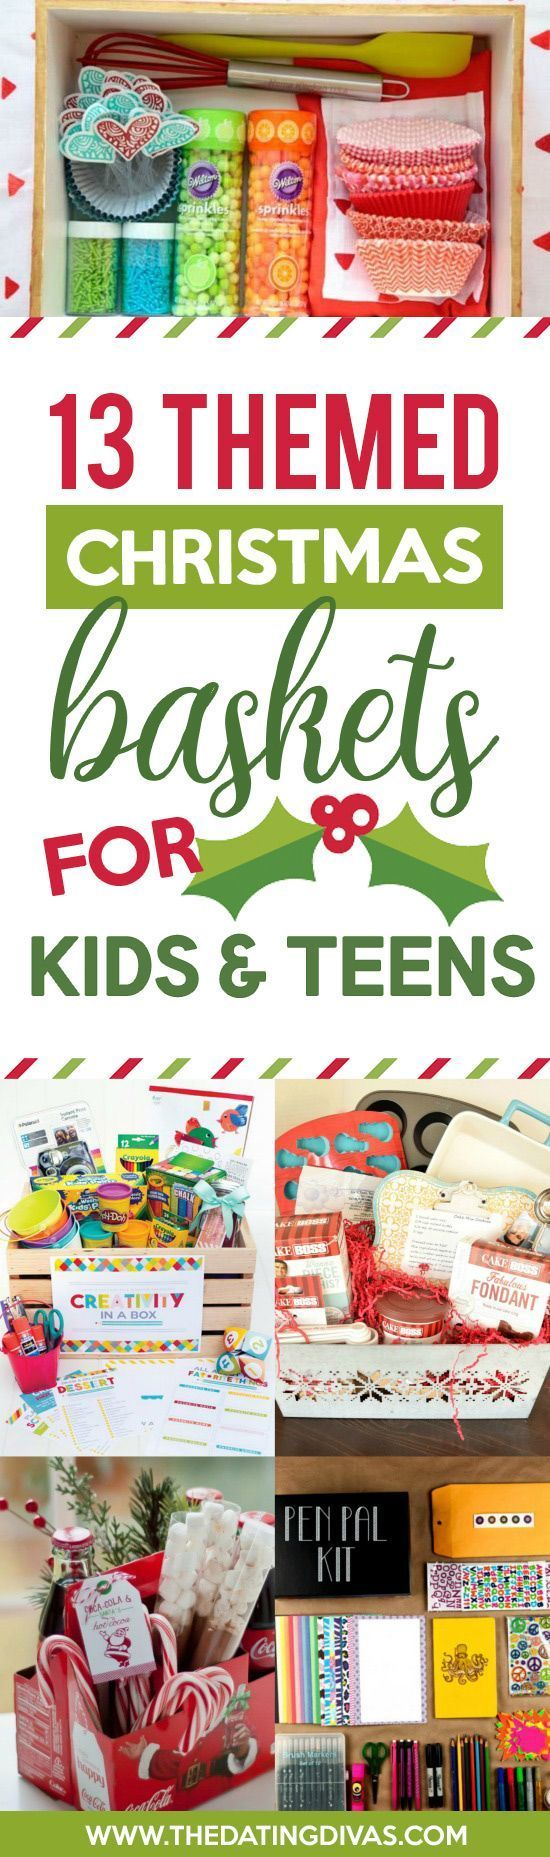 Christmas Gift Baskets For Kids.Basket Gifts Themed Christmas Gift Baskets For Kids And